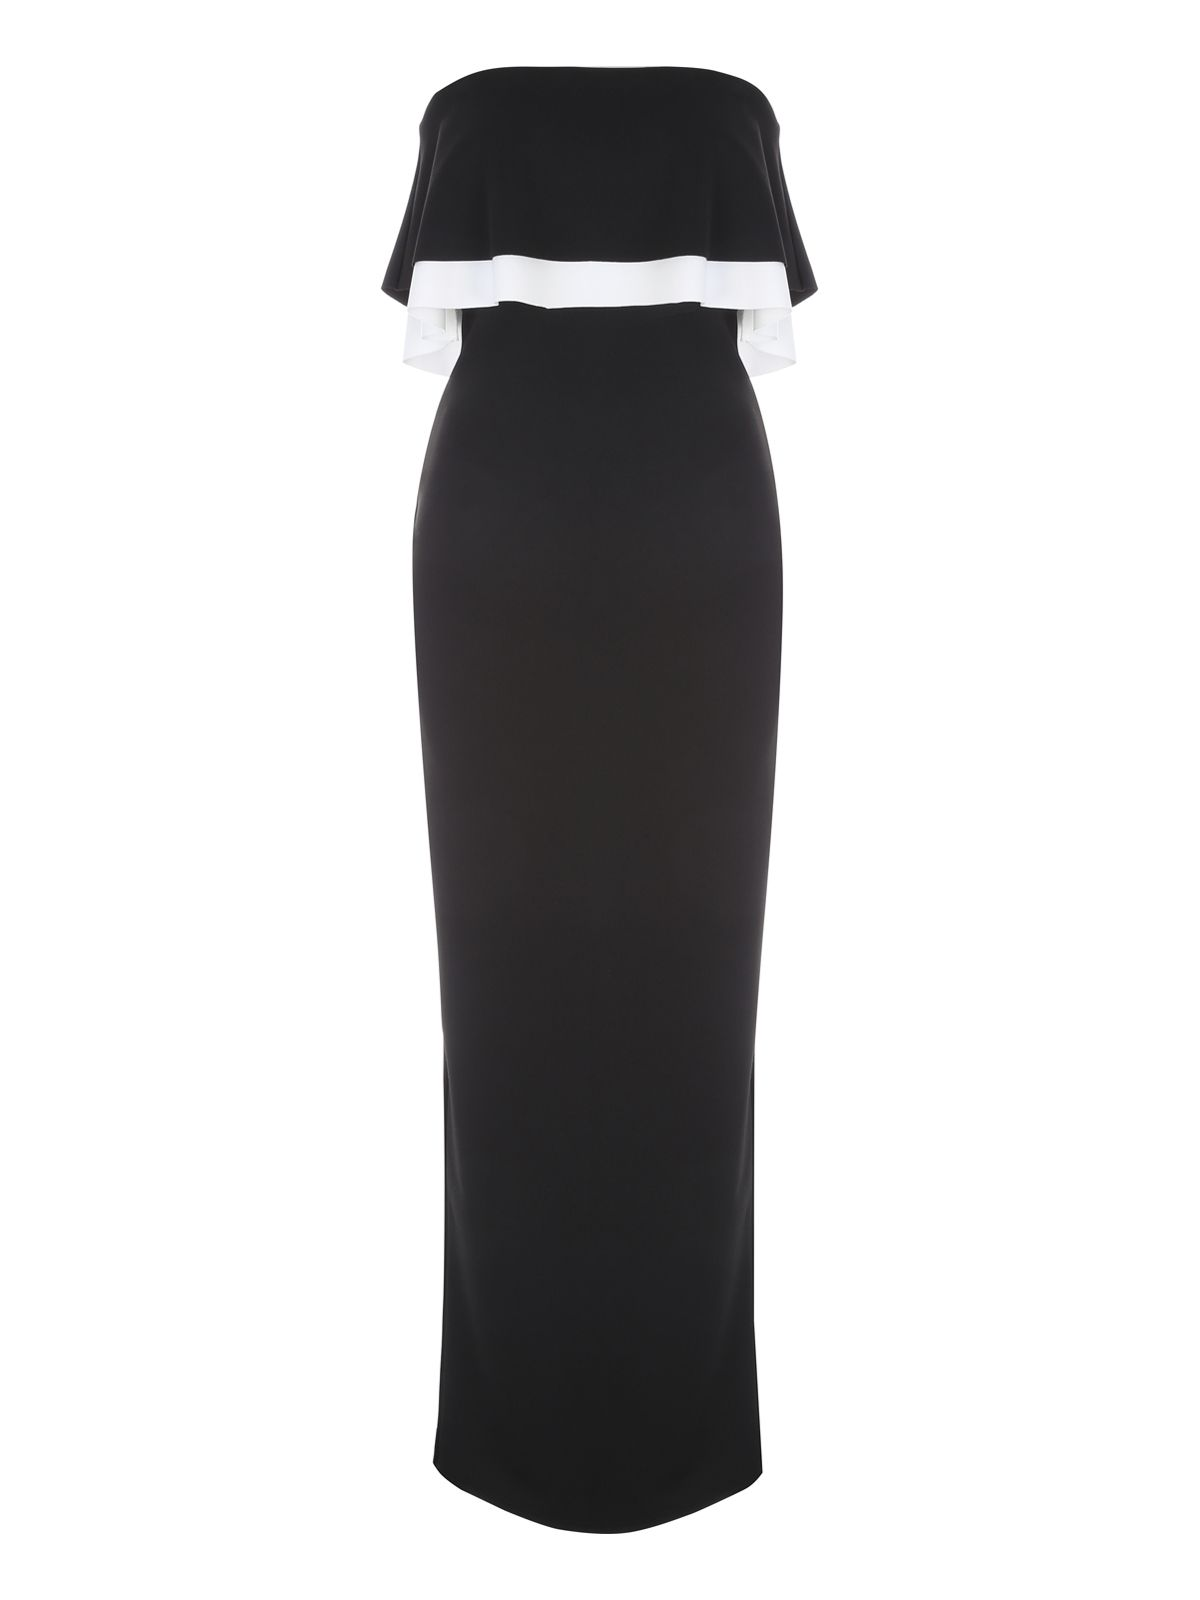 Jane Norman Monochrome Ruffle Maxi Dress, Multi-Coloured